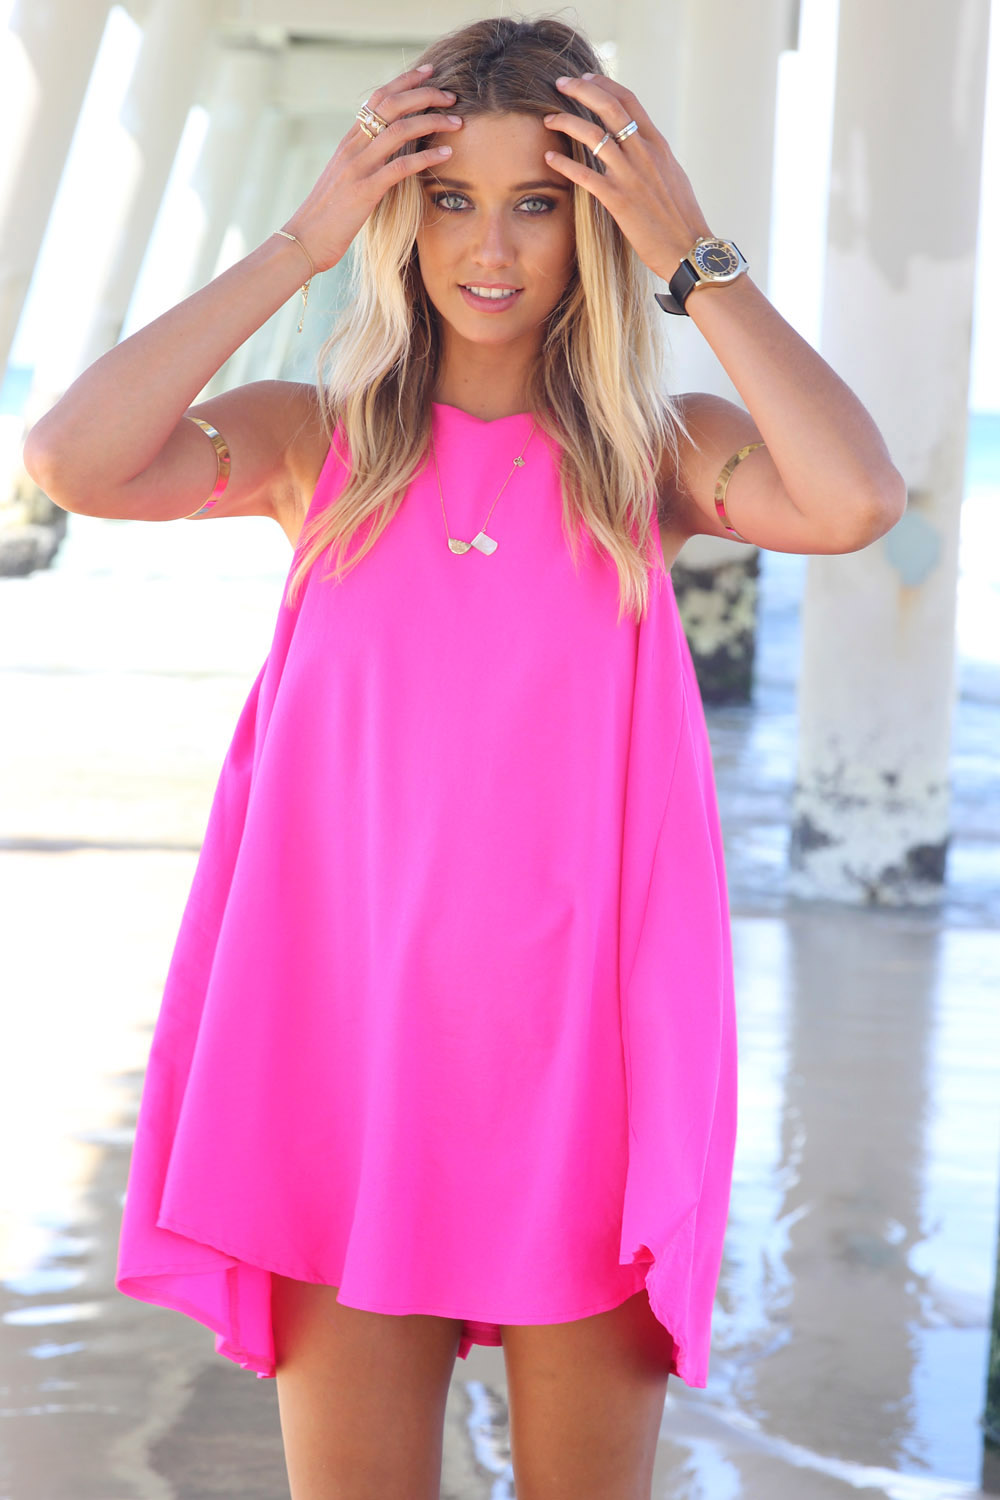 Pink Mini Dress - Hot Pink Flare Sleeveless Dress | UsTrendy